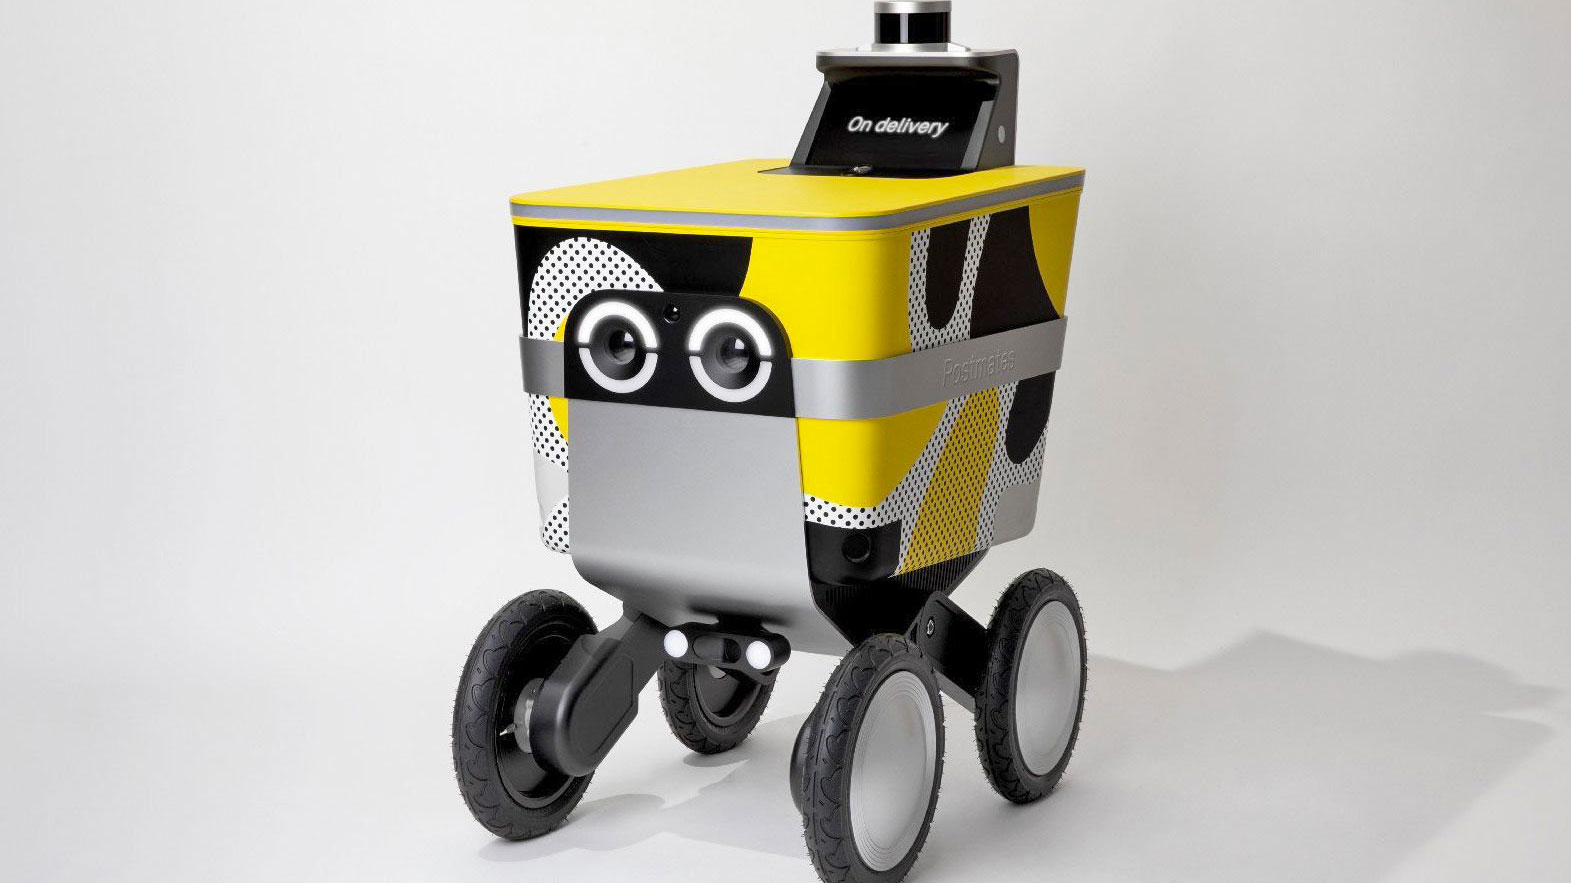 Postmates has launched a delivery robot that will bring lunch to your door